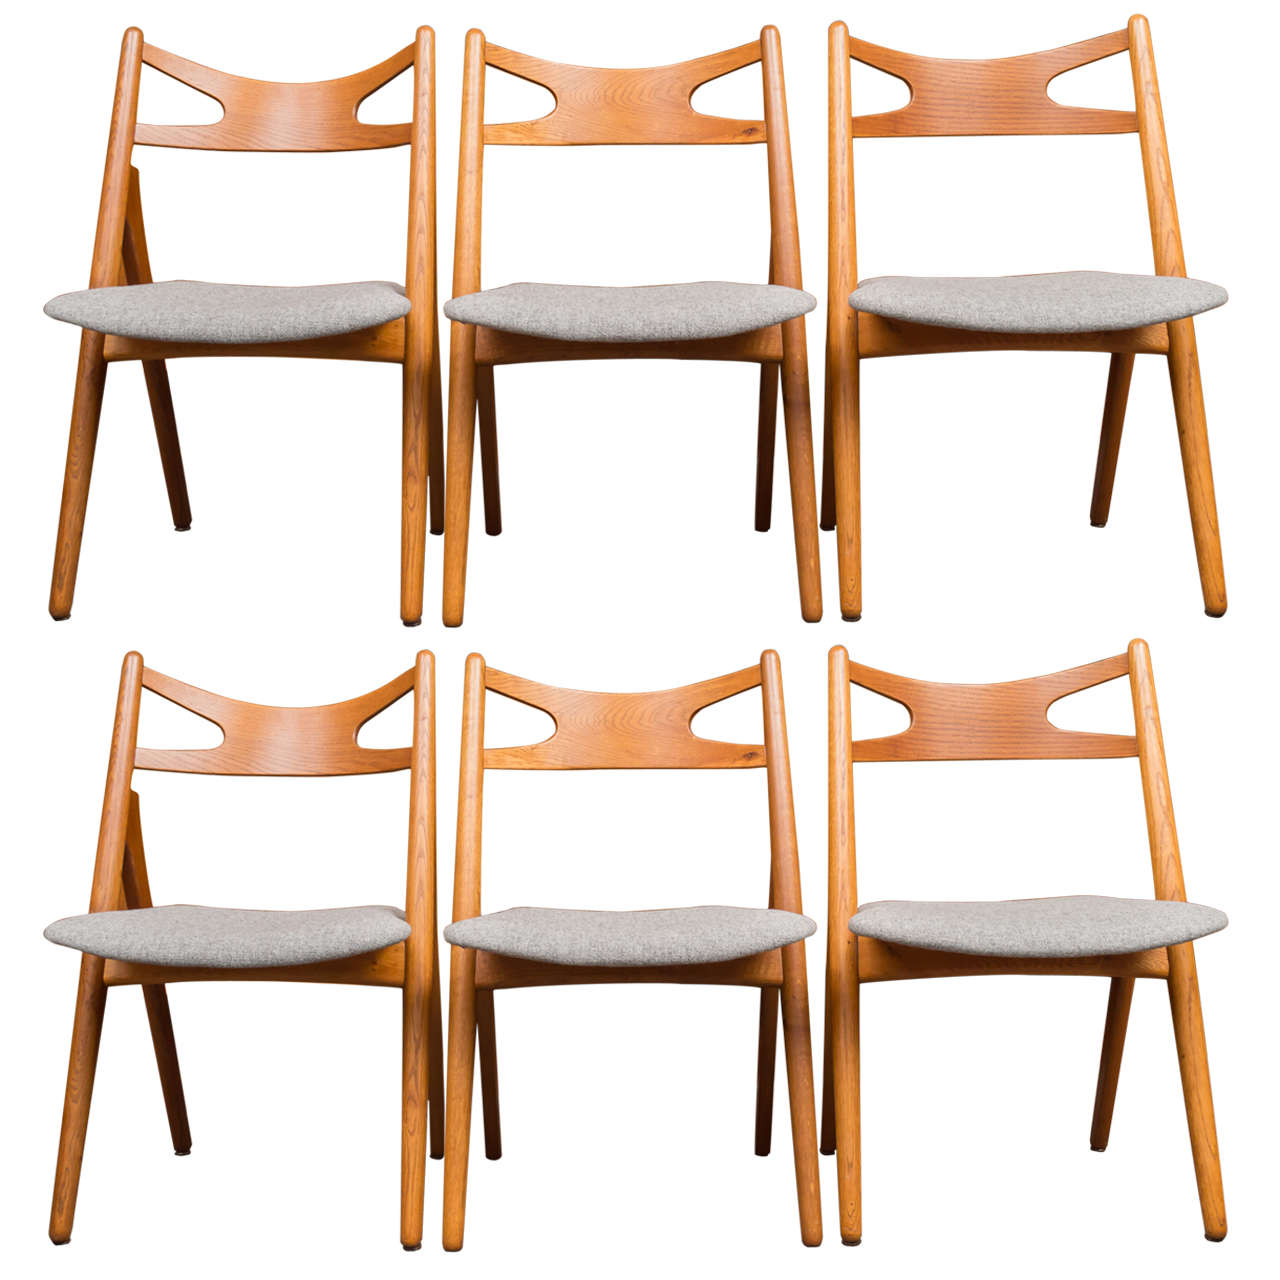 hans j wegner sawbuck chairs ch29 for sale at 1stdibs. Black Bedroom Furniture Sets. Home Design Ideas